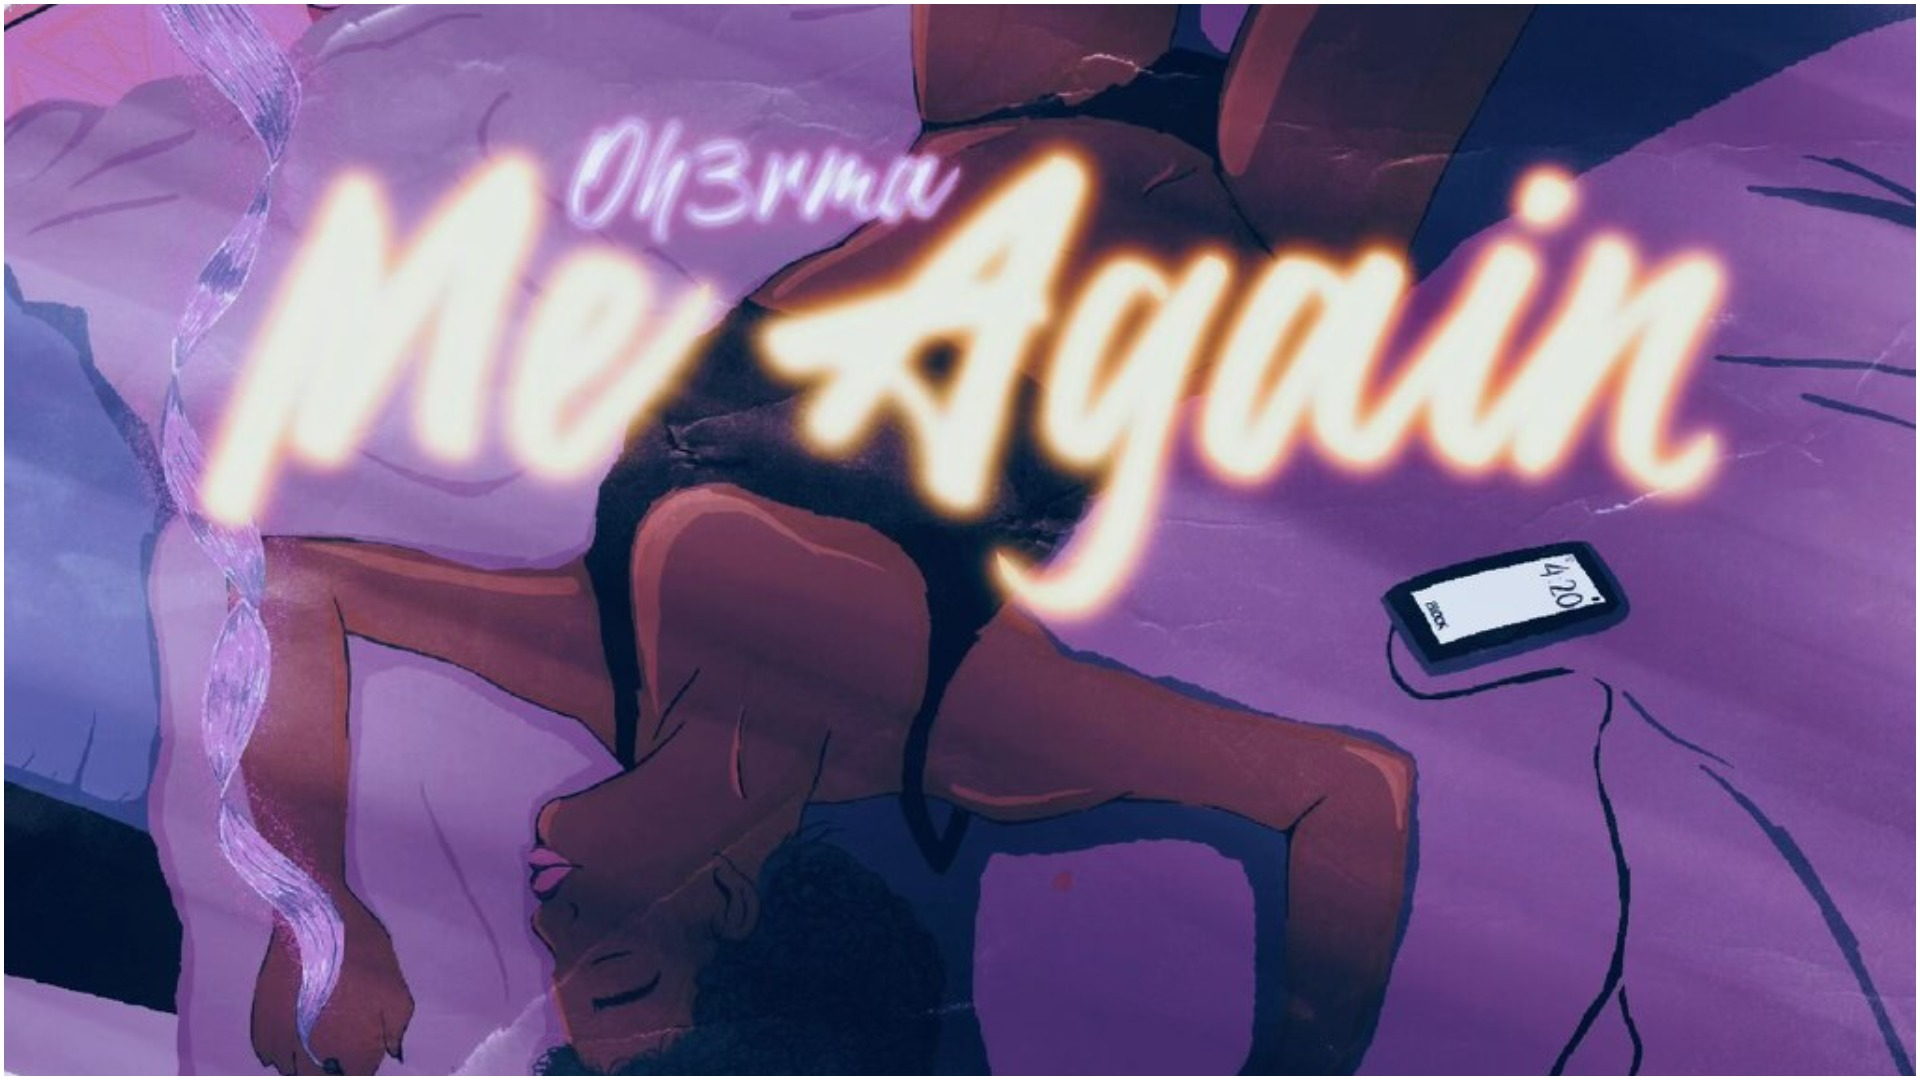 Oh3rma's Highly-Anticipated 'Me Again' Song Ready For Release